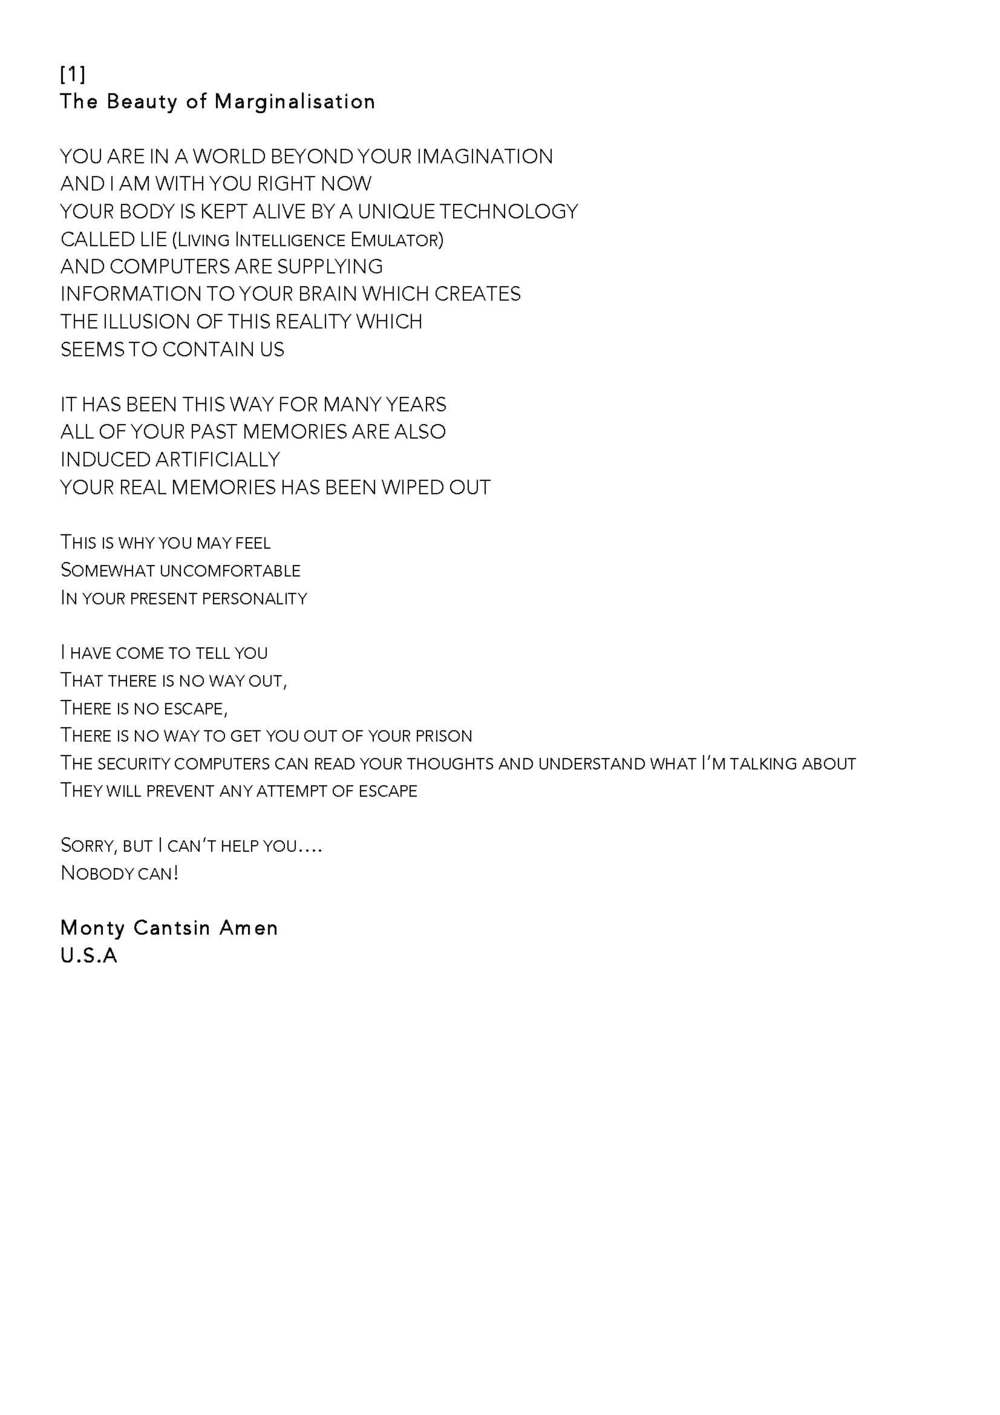 Poetry Collection - Everyone can Poetry _ For 16 Sept 2014_Page_01.jpg